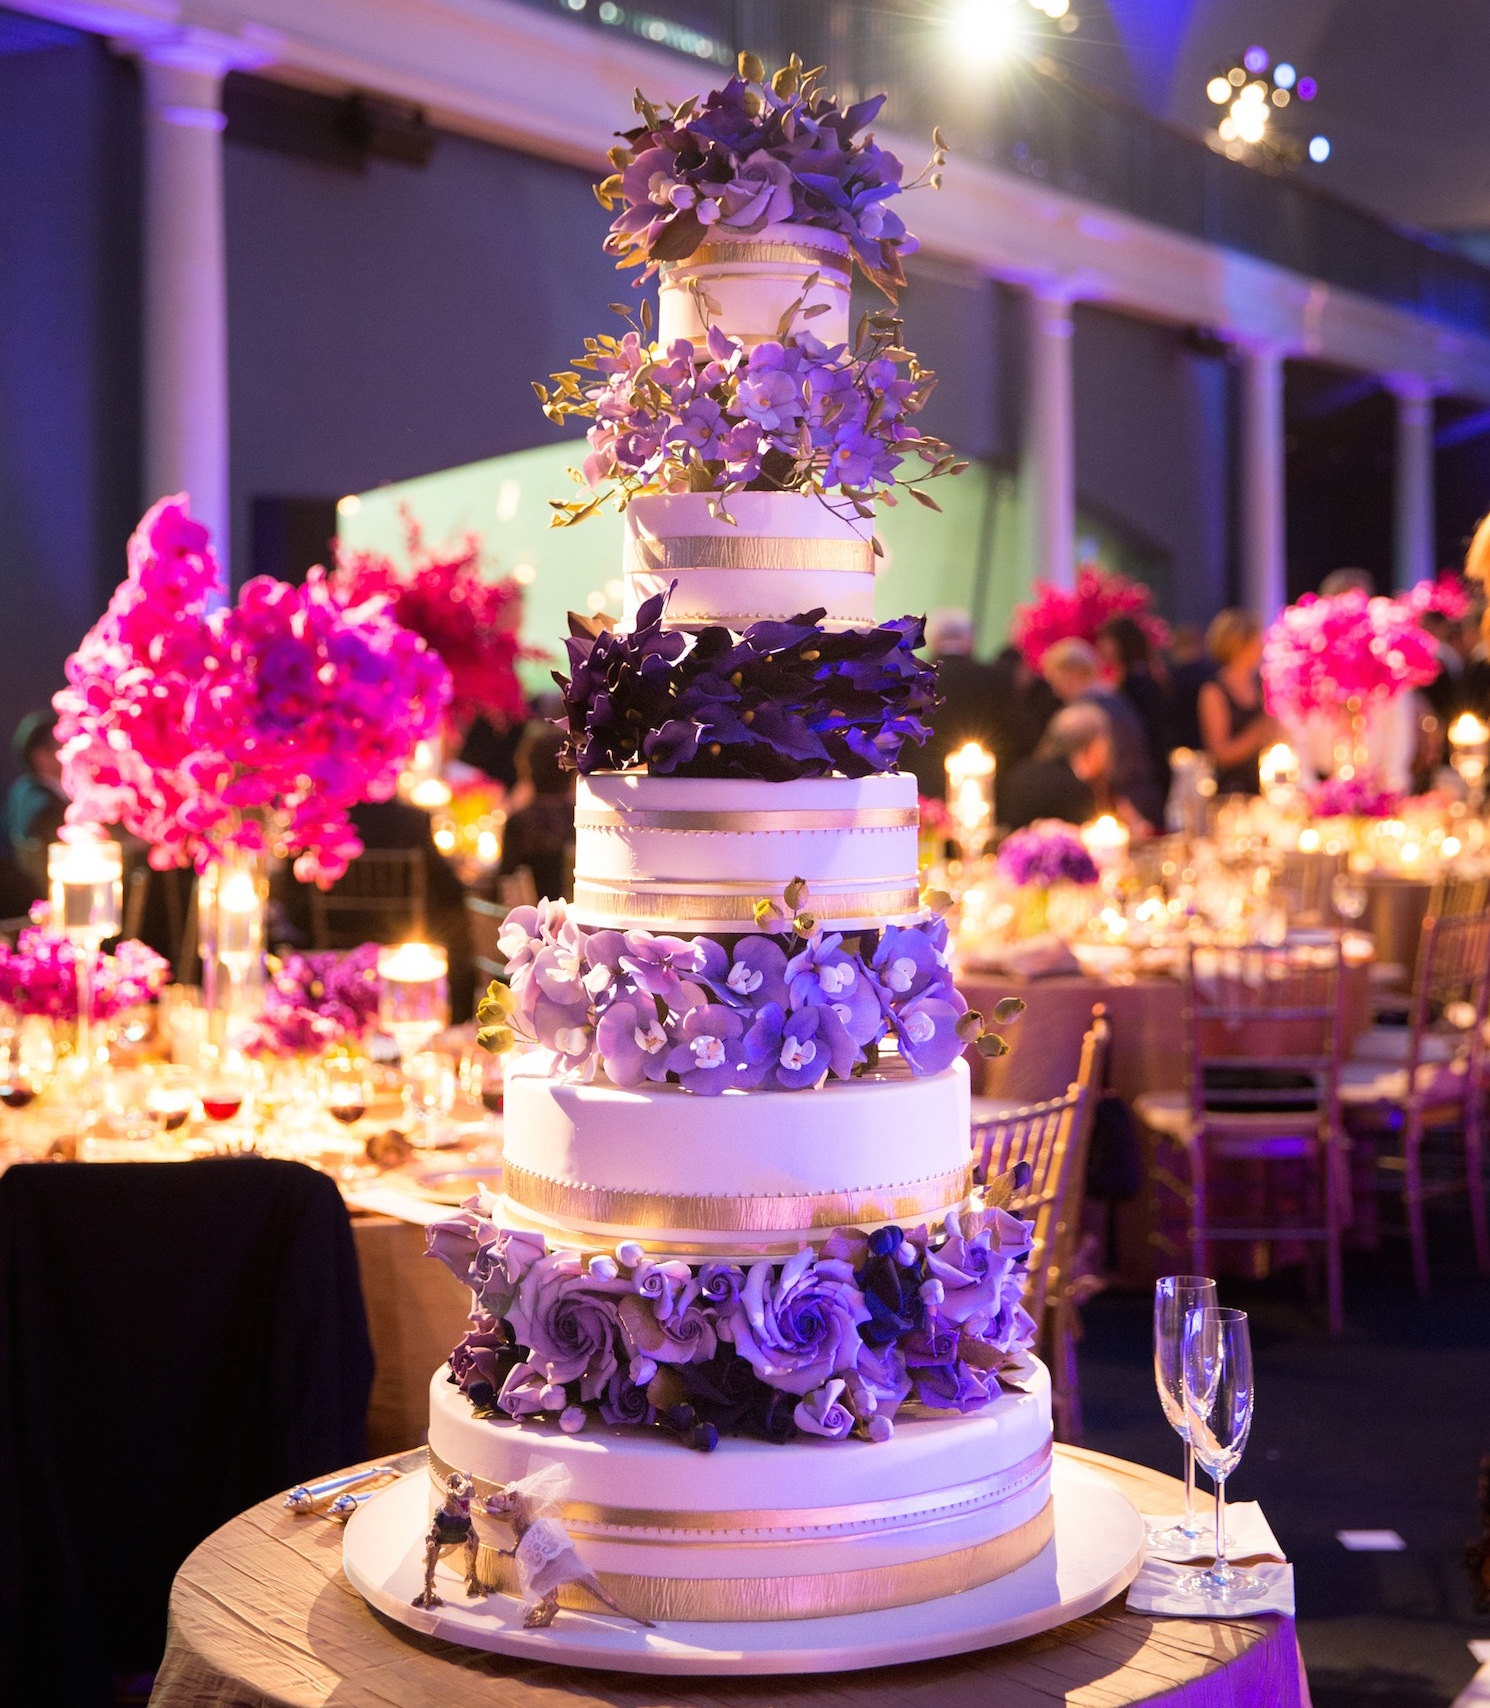 Gold Wedding Cake Decorations: Wedding Cake Ideas: Nontraditional Wedding Cake